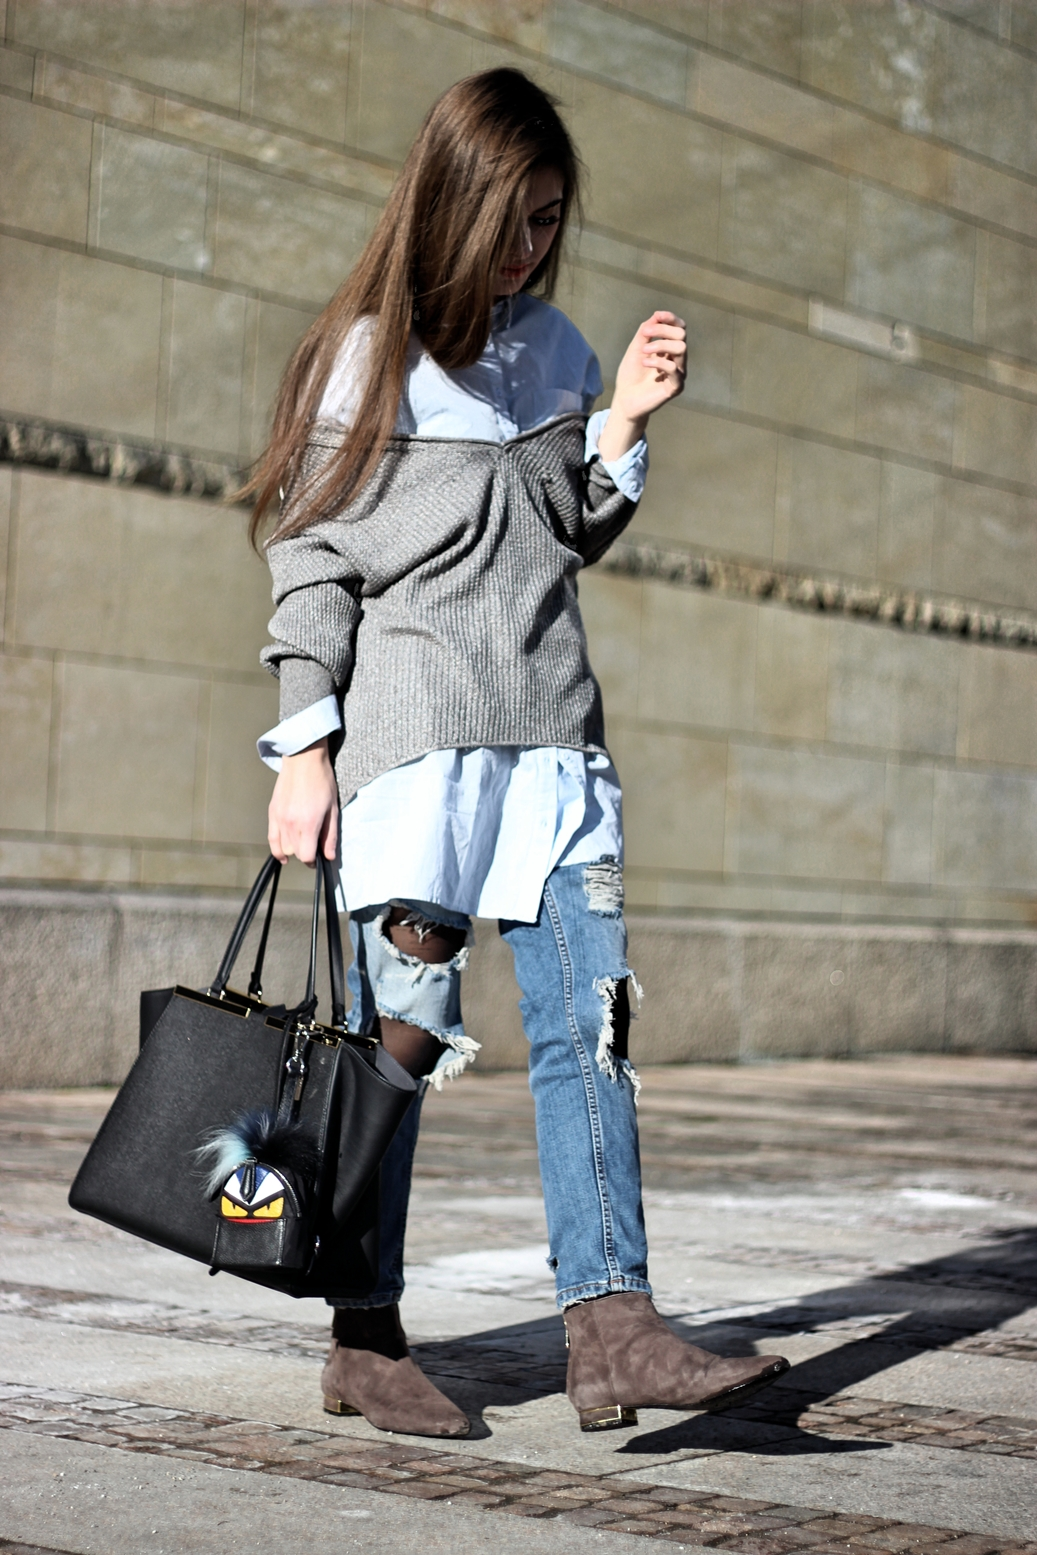 fendi-streetstyle-zara-outfit-germany-munich-3jours-layering